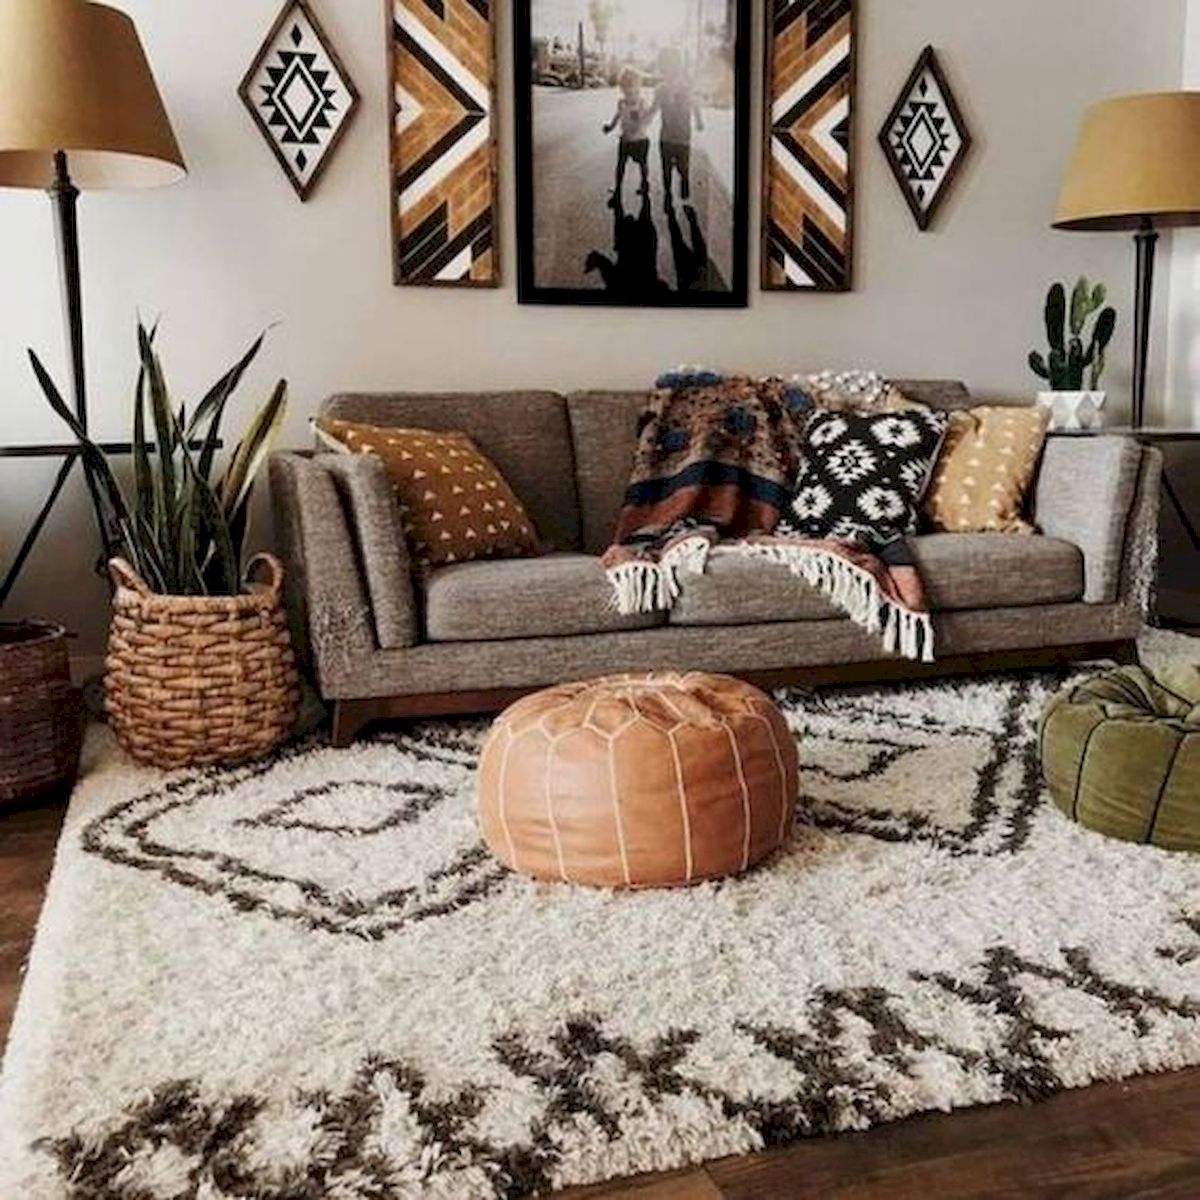 Living Room Decor Ideas: 55 Bohemian Living Room Decor Ideas